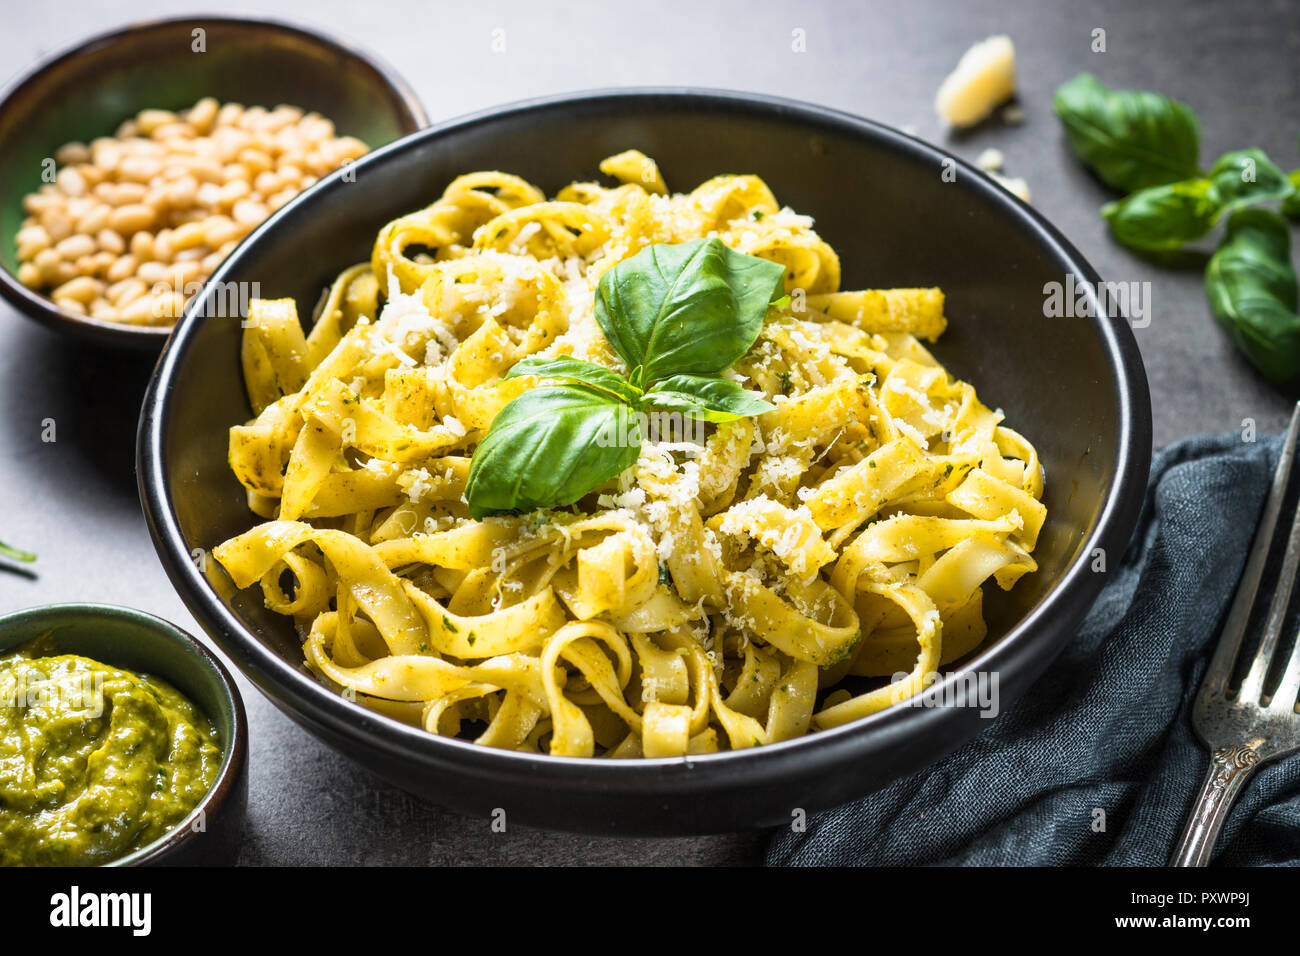 Tagliatelle au pesto et parmesan. Photo Stock